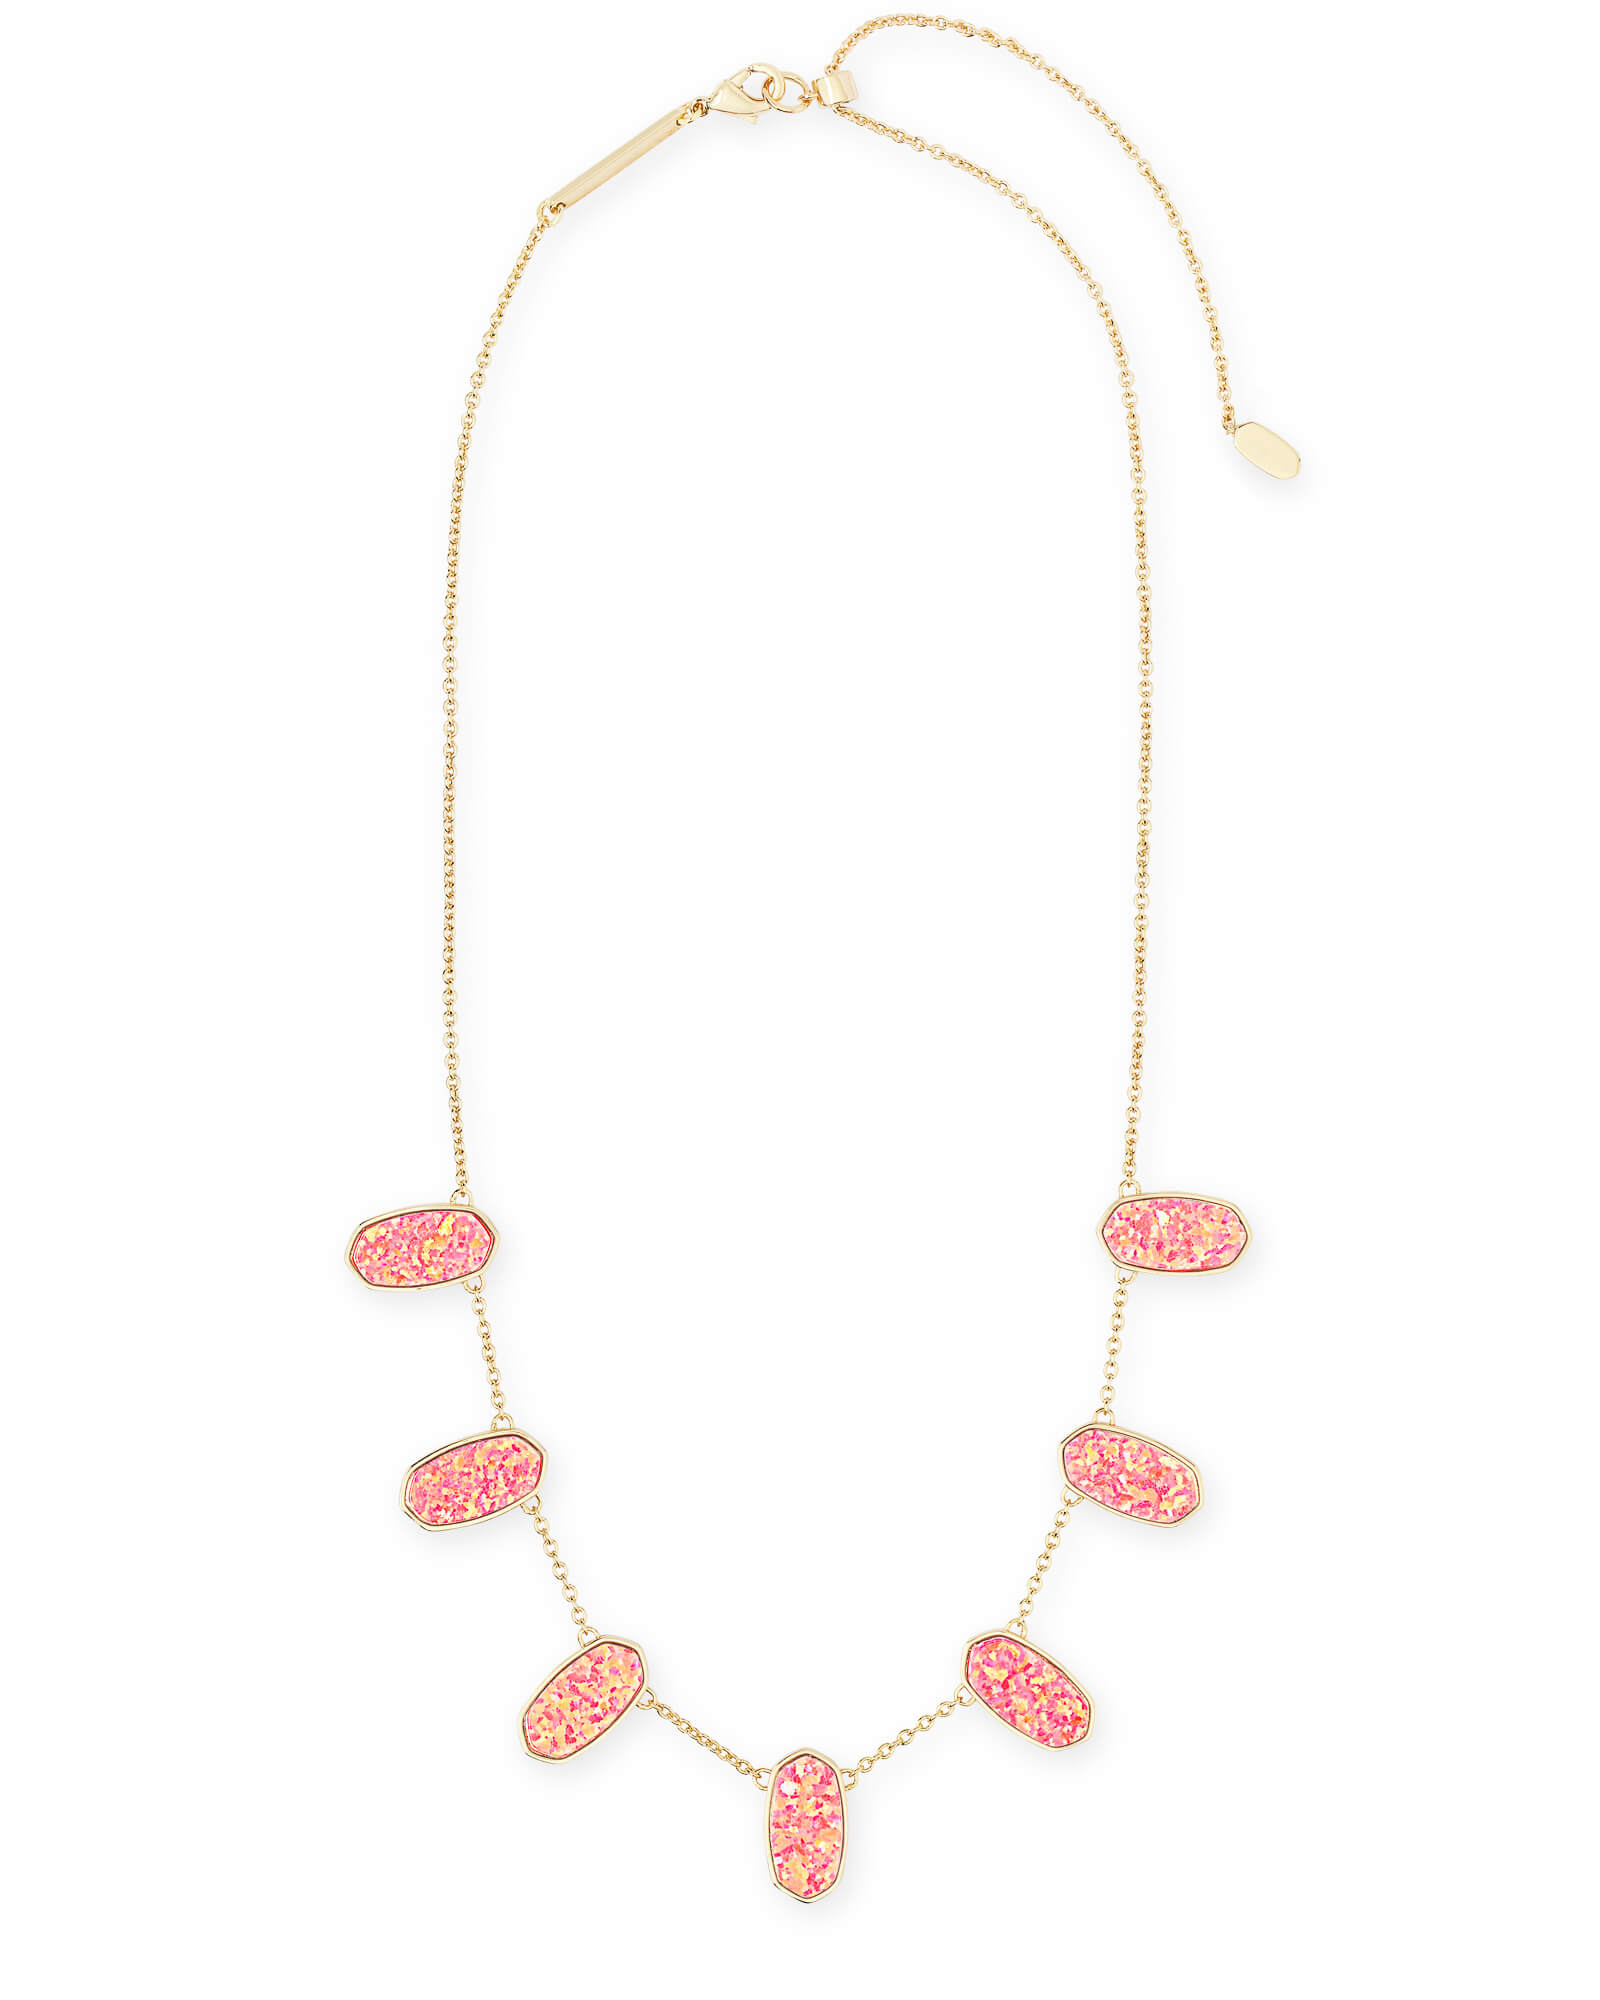 Meadow Gold Collar Necklace in Hot Pink Kyocera Opal